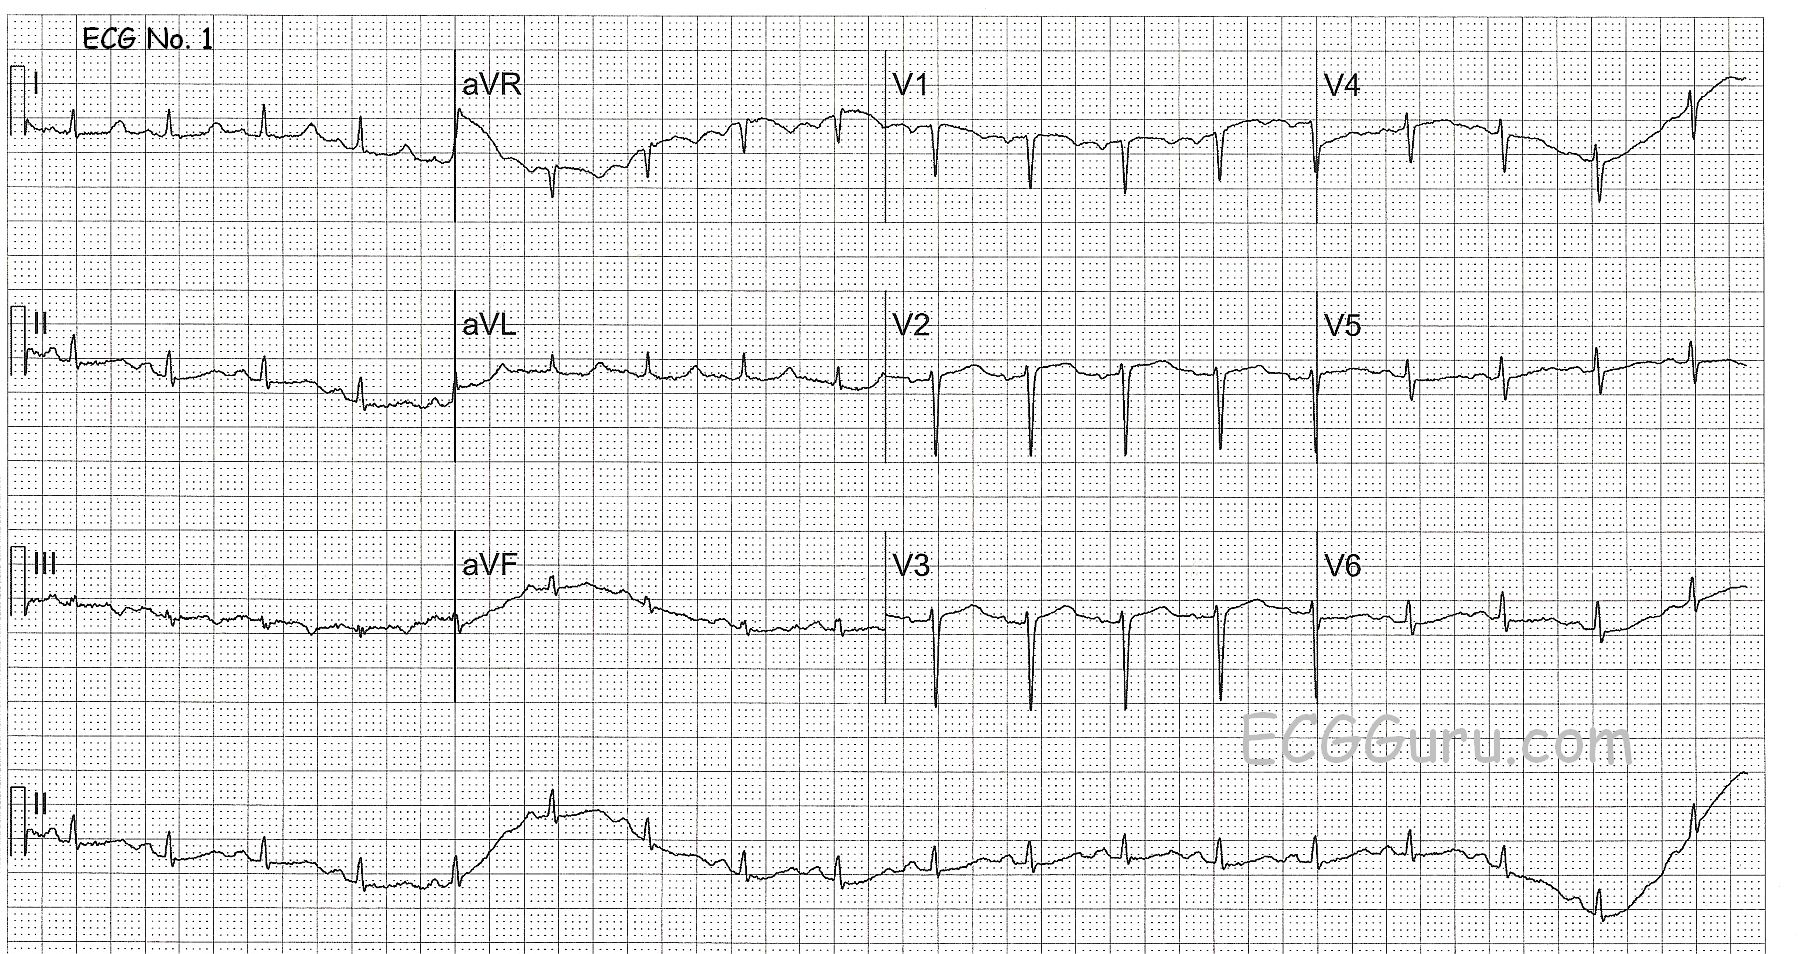 Ecg Challenge Cardiac Arrest In A 41 Year Old Woman Ecg